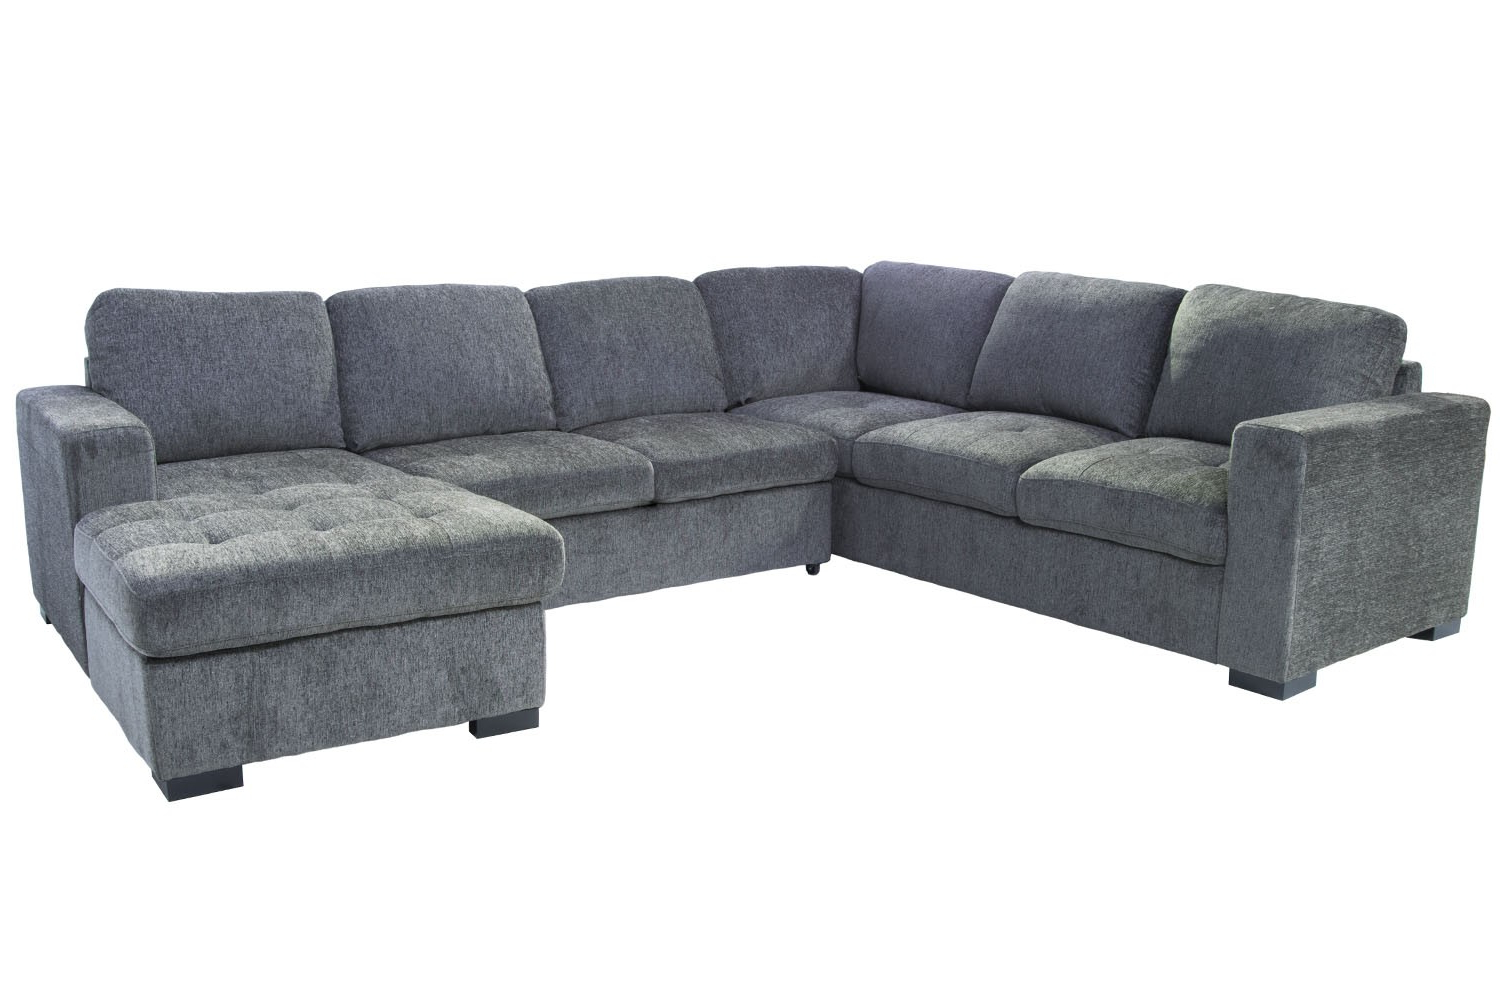 Waylon 3 Piece Power Reclining Sectionals Intended For Current Sectional Sofas (View 6 of 20)